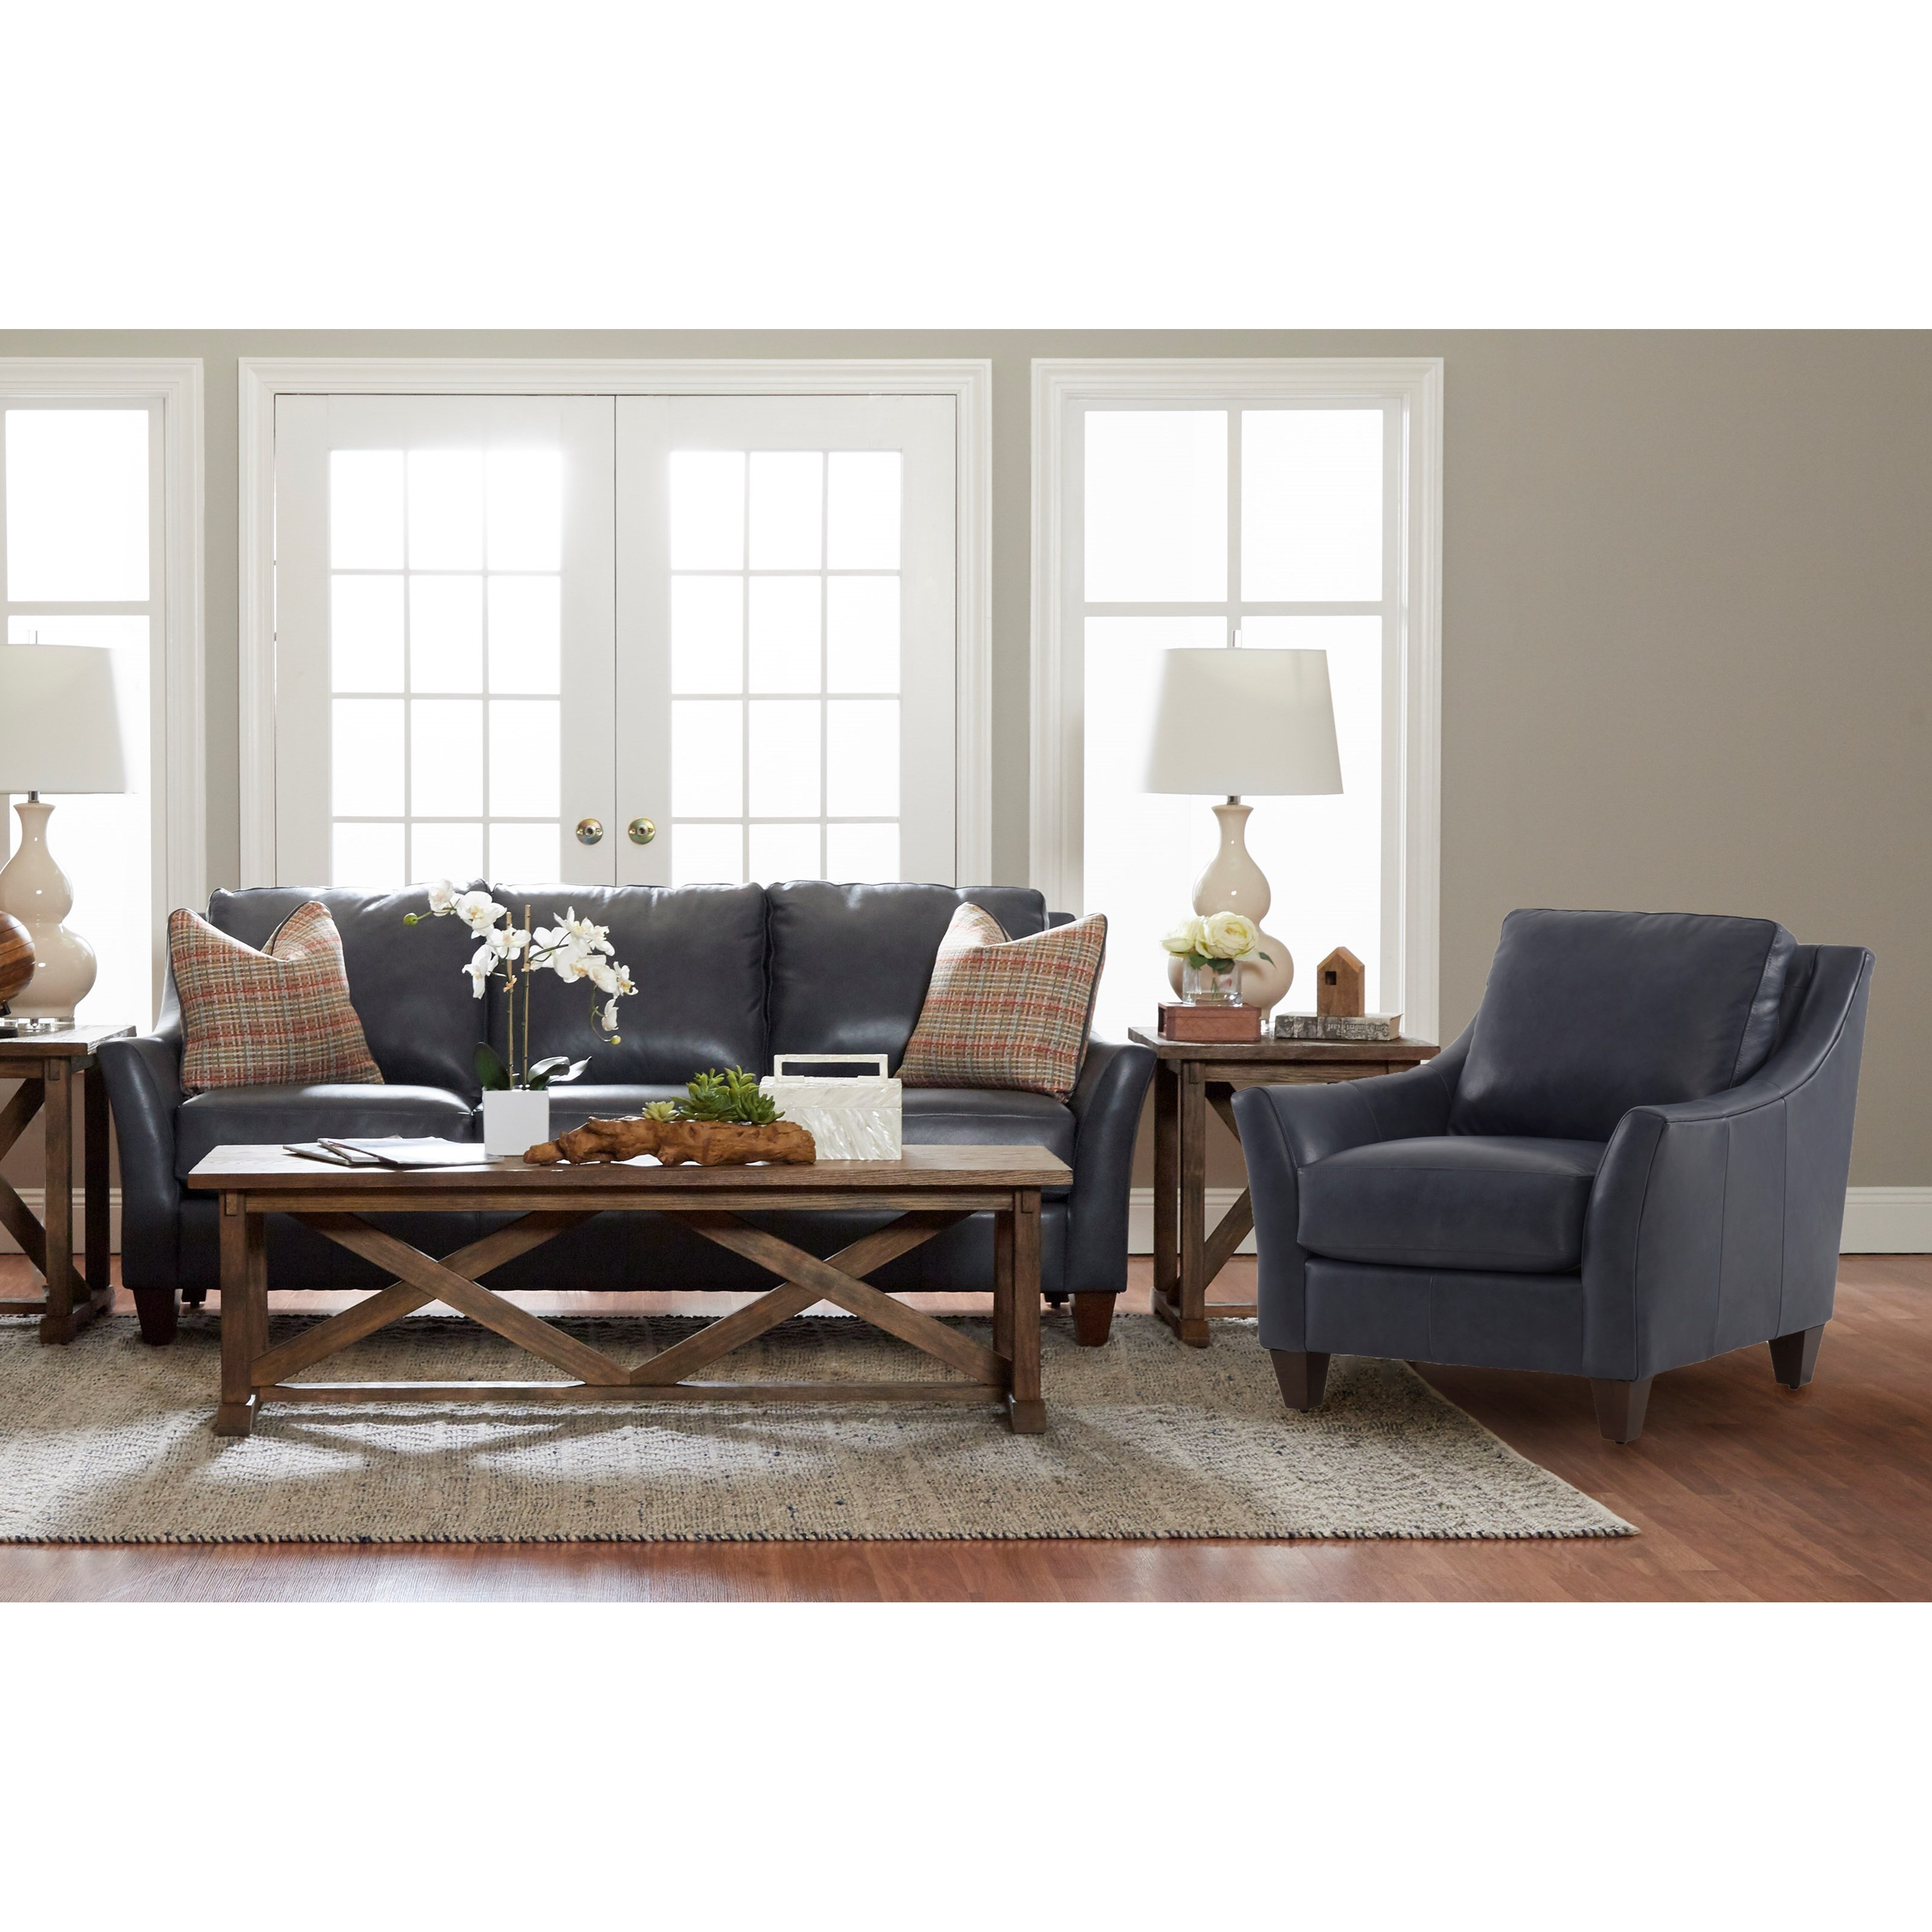 Joanna Living Room Group by Klaussner at Northeast Factory Direct